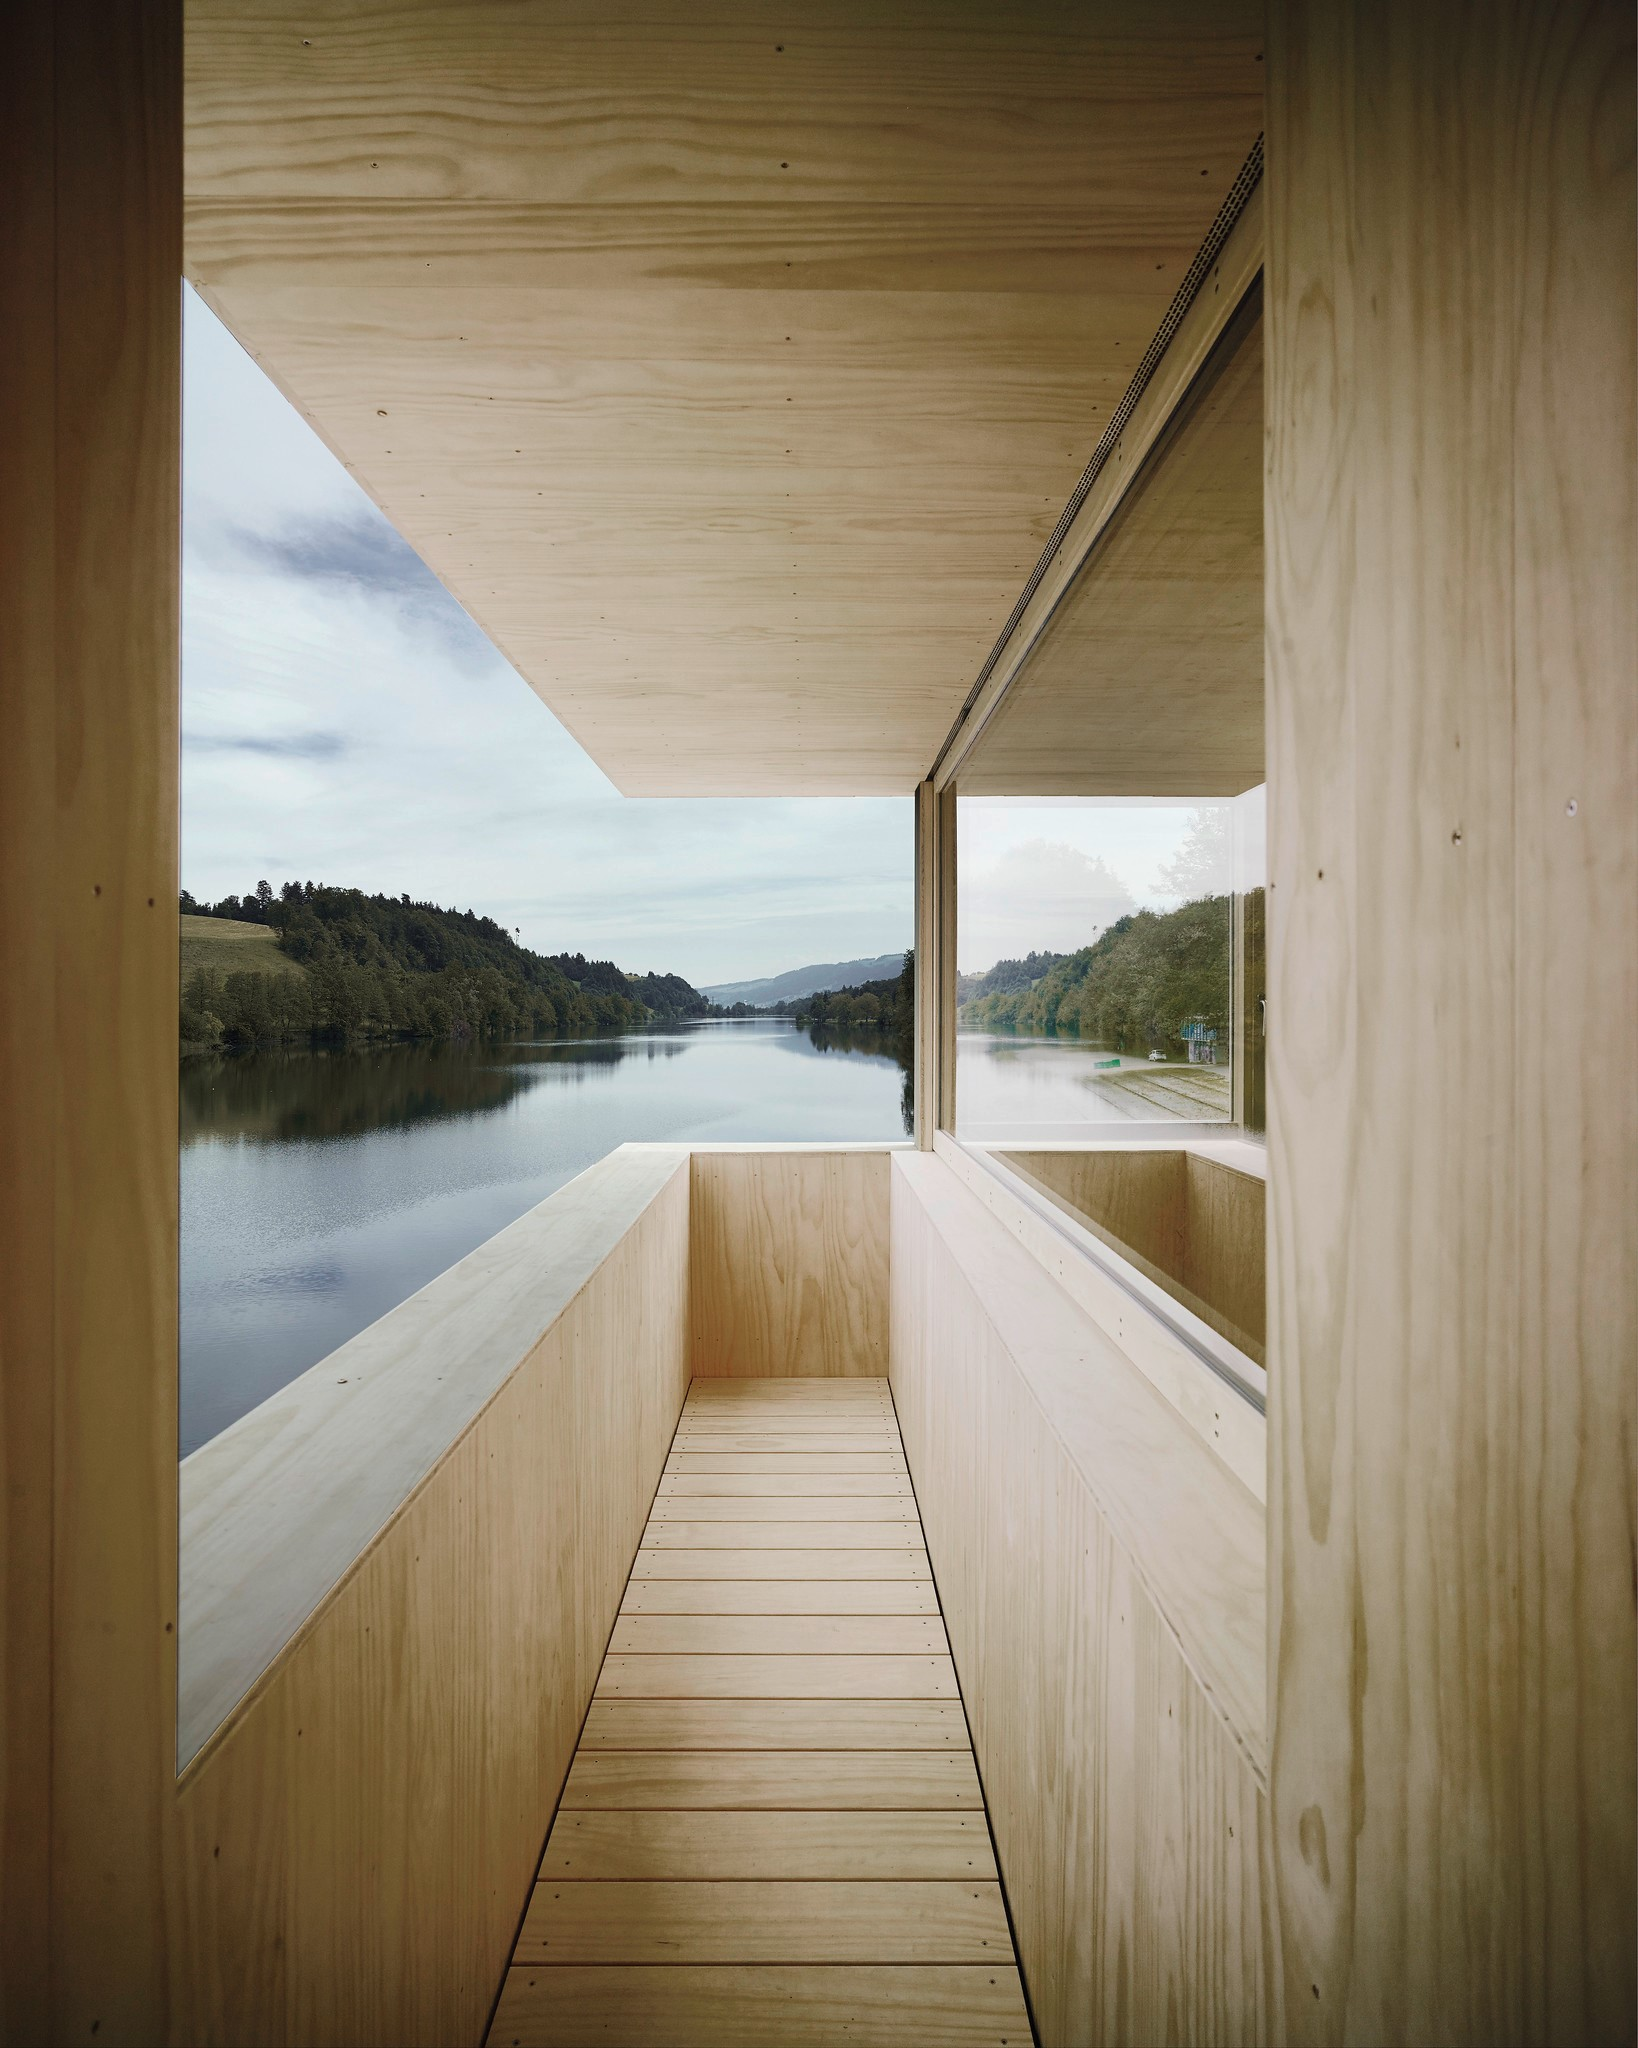 AFGH Architekten's Lake Rotsee Refuge. Architects: Andreas Fuhrimann, Gabrielle Hächler. Photo credit © Valentin Jeck